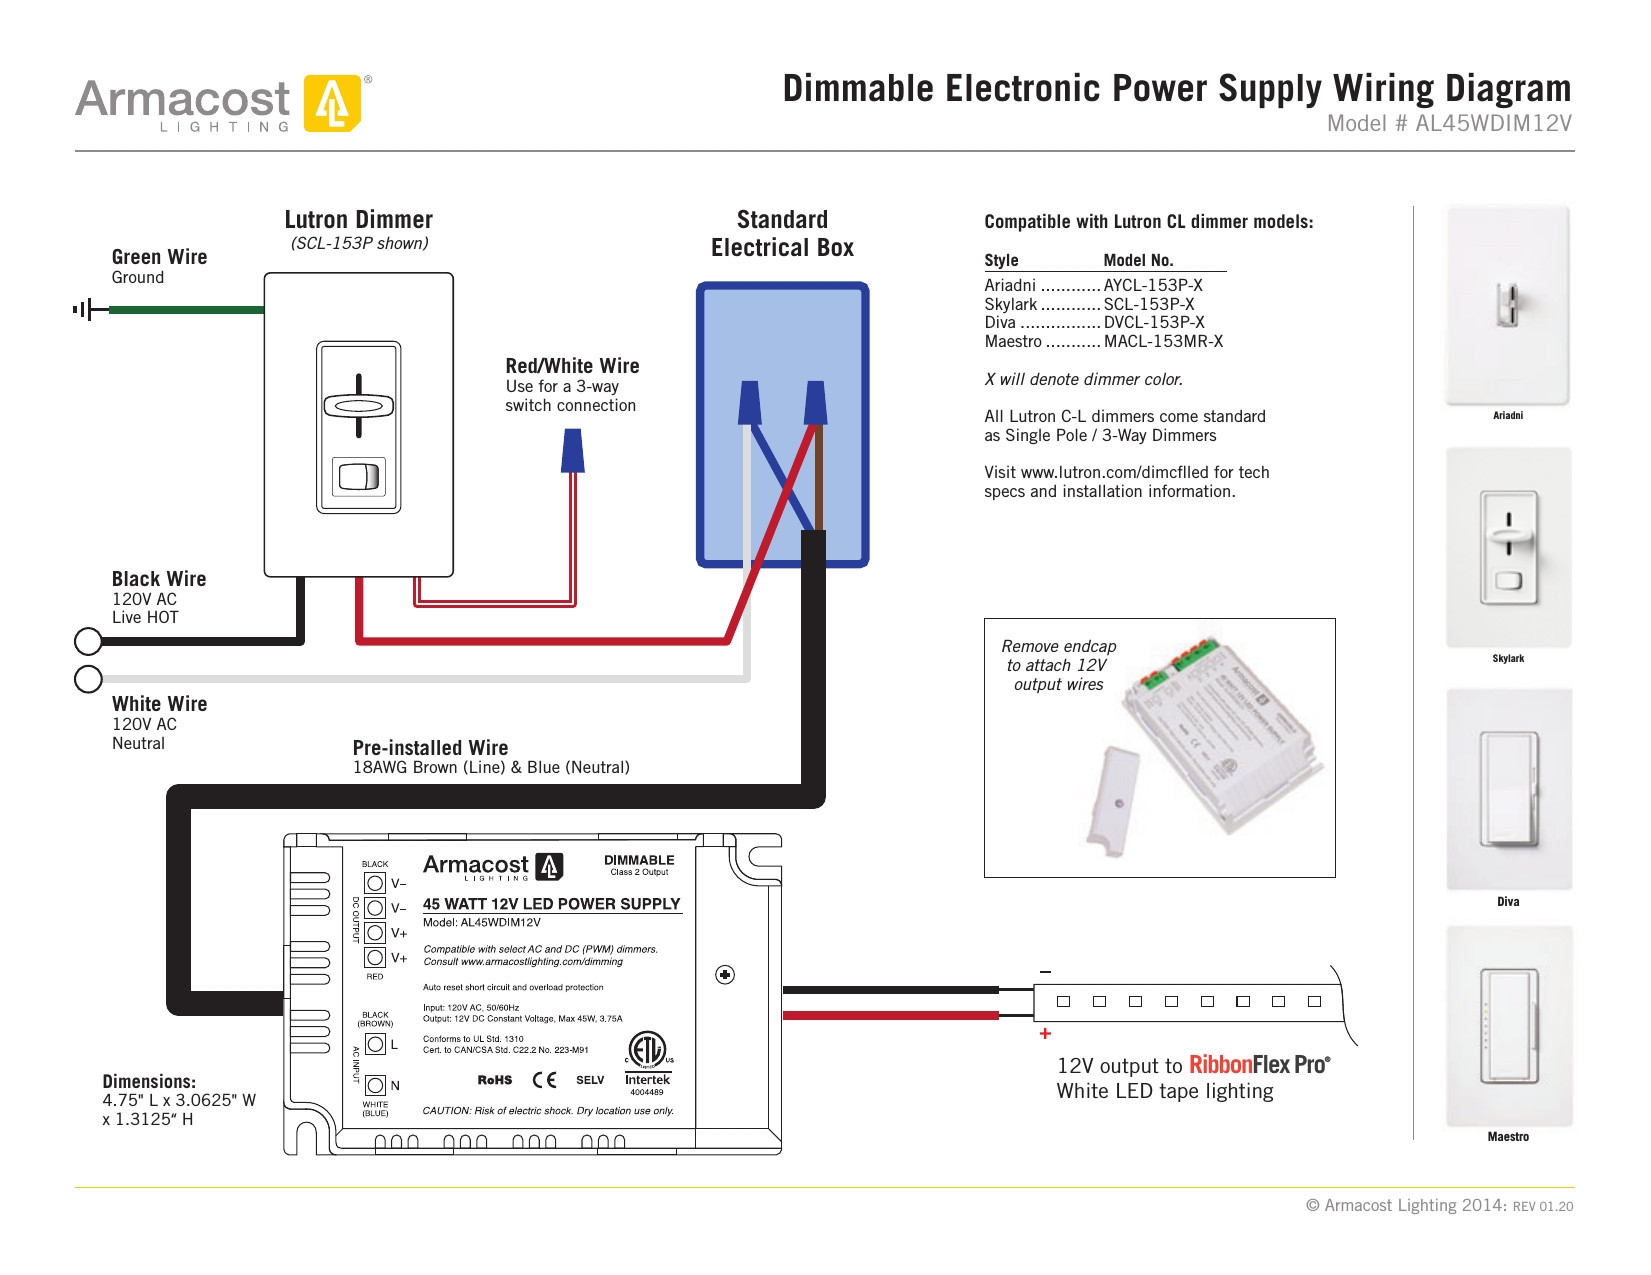 free download b guitar wiring diagram fgm series need lutron 3 way switch wiring diagram | free wiring diagram free download 3 way wiring diagram #14